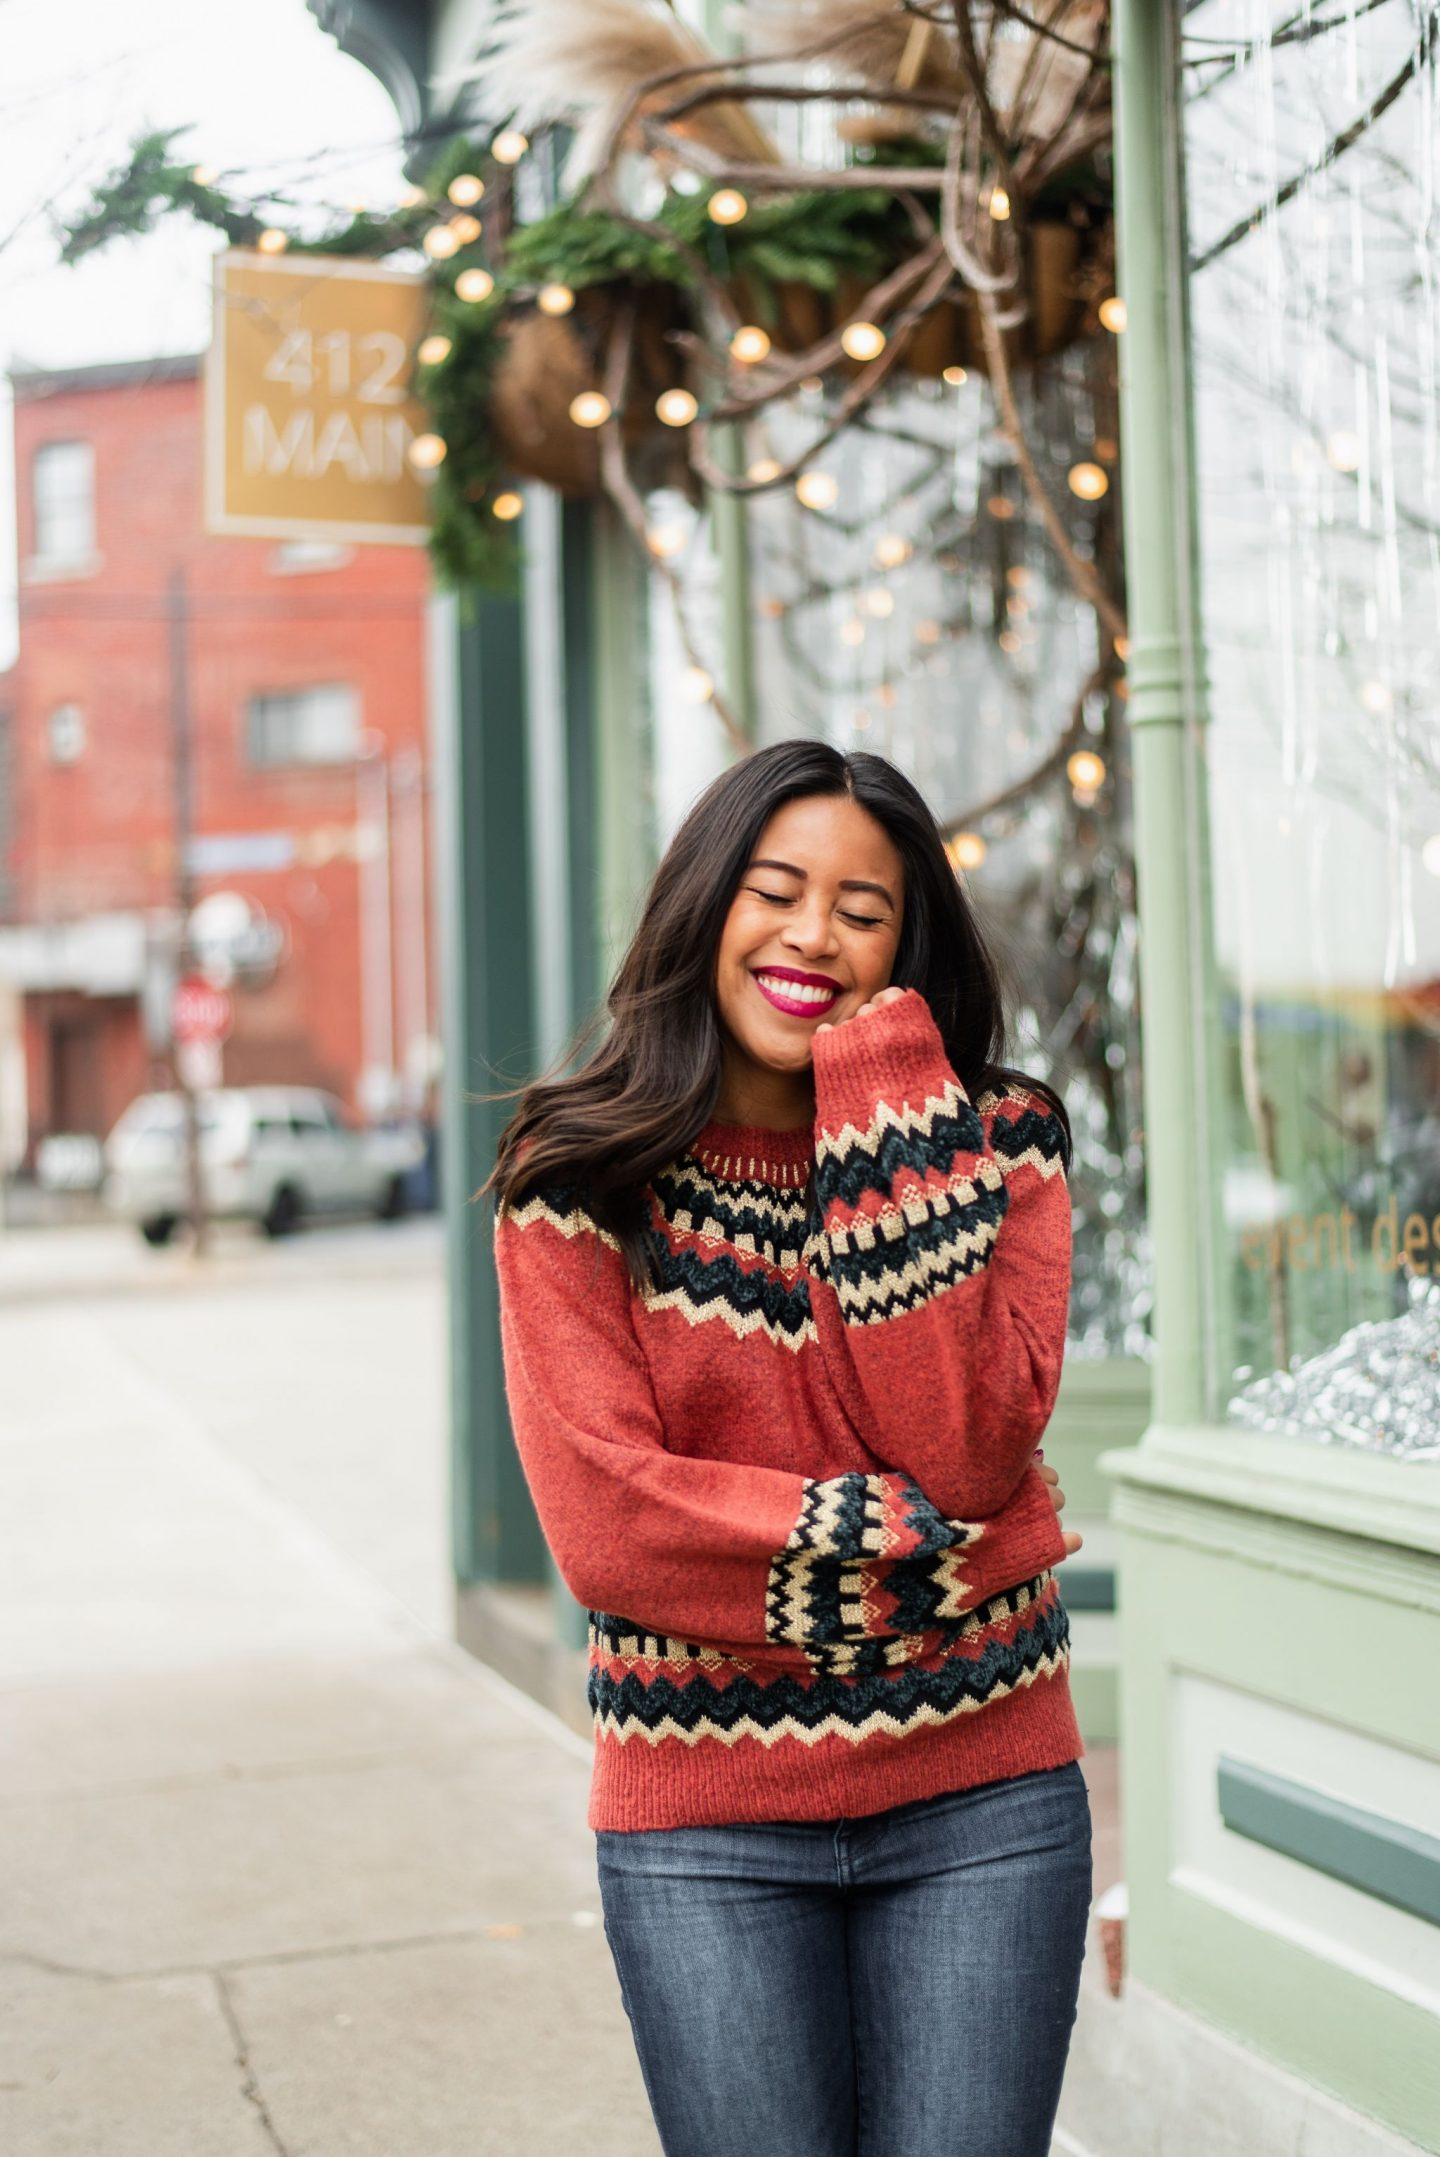 5 cute winter outfit ideas you can wear this season  emma